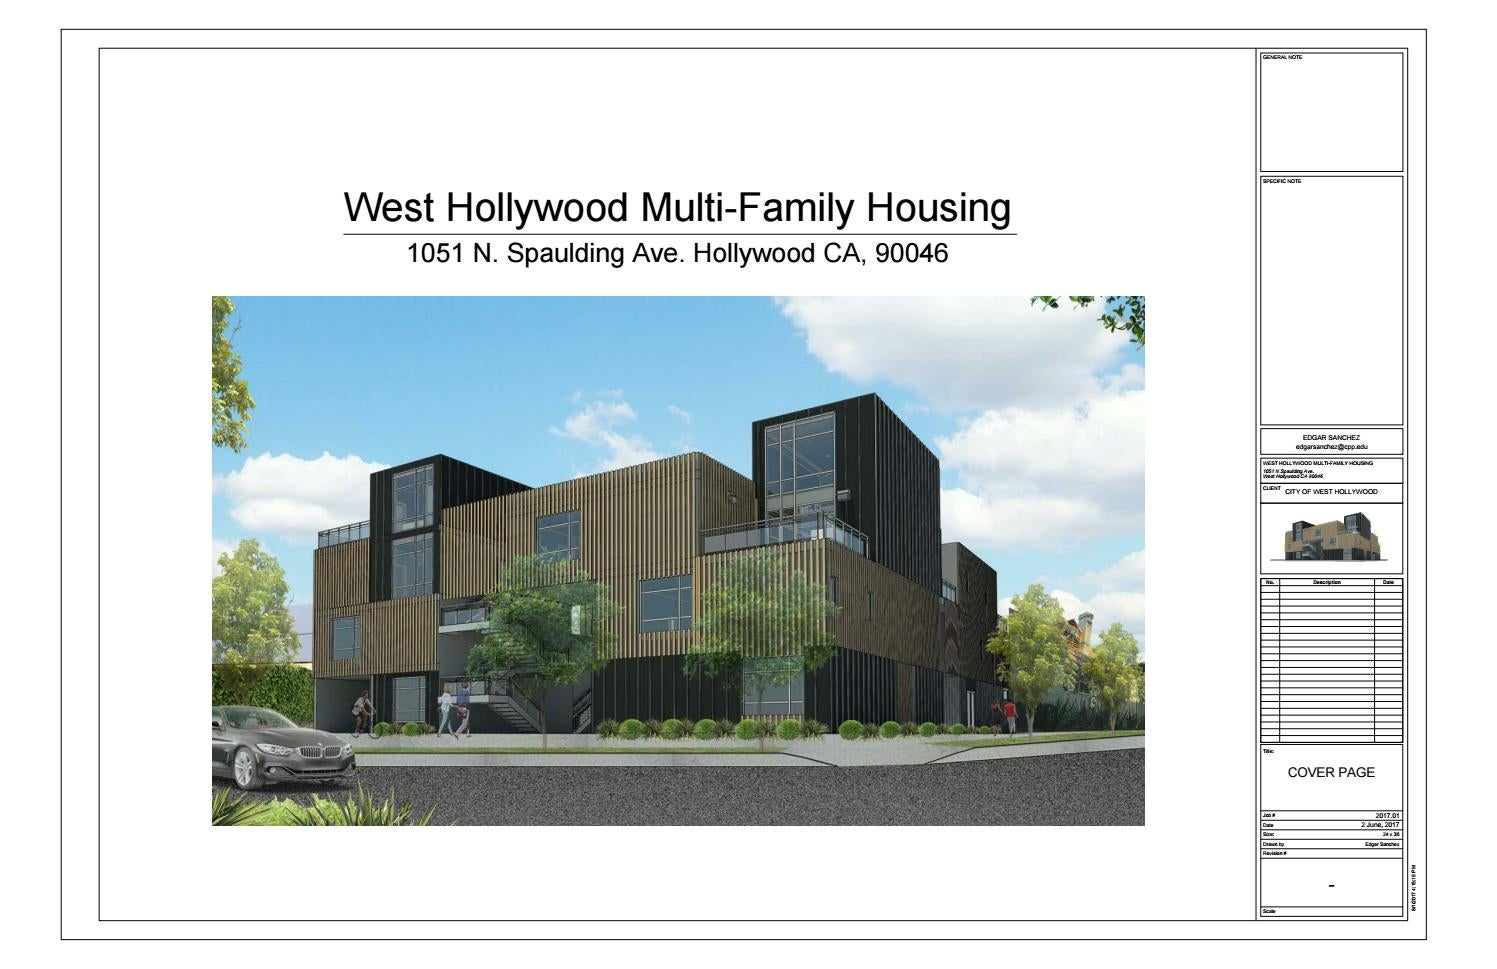 West Hollywood Multi-Family Housing Project by edgarjoels